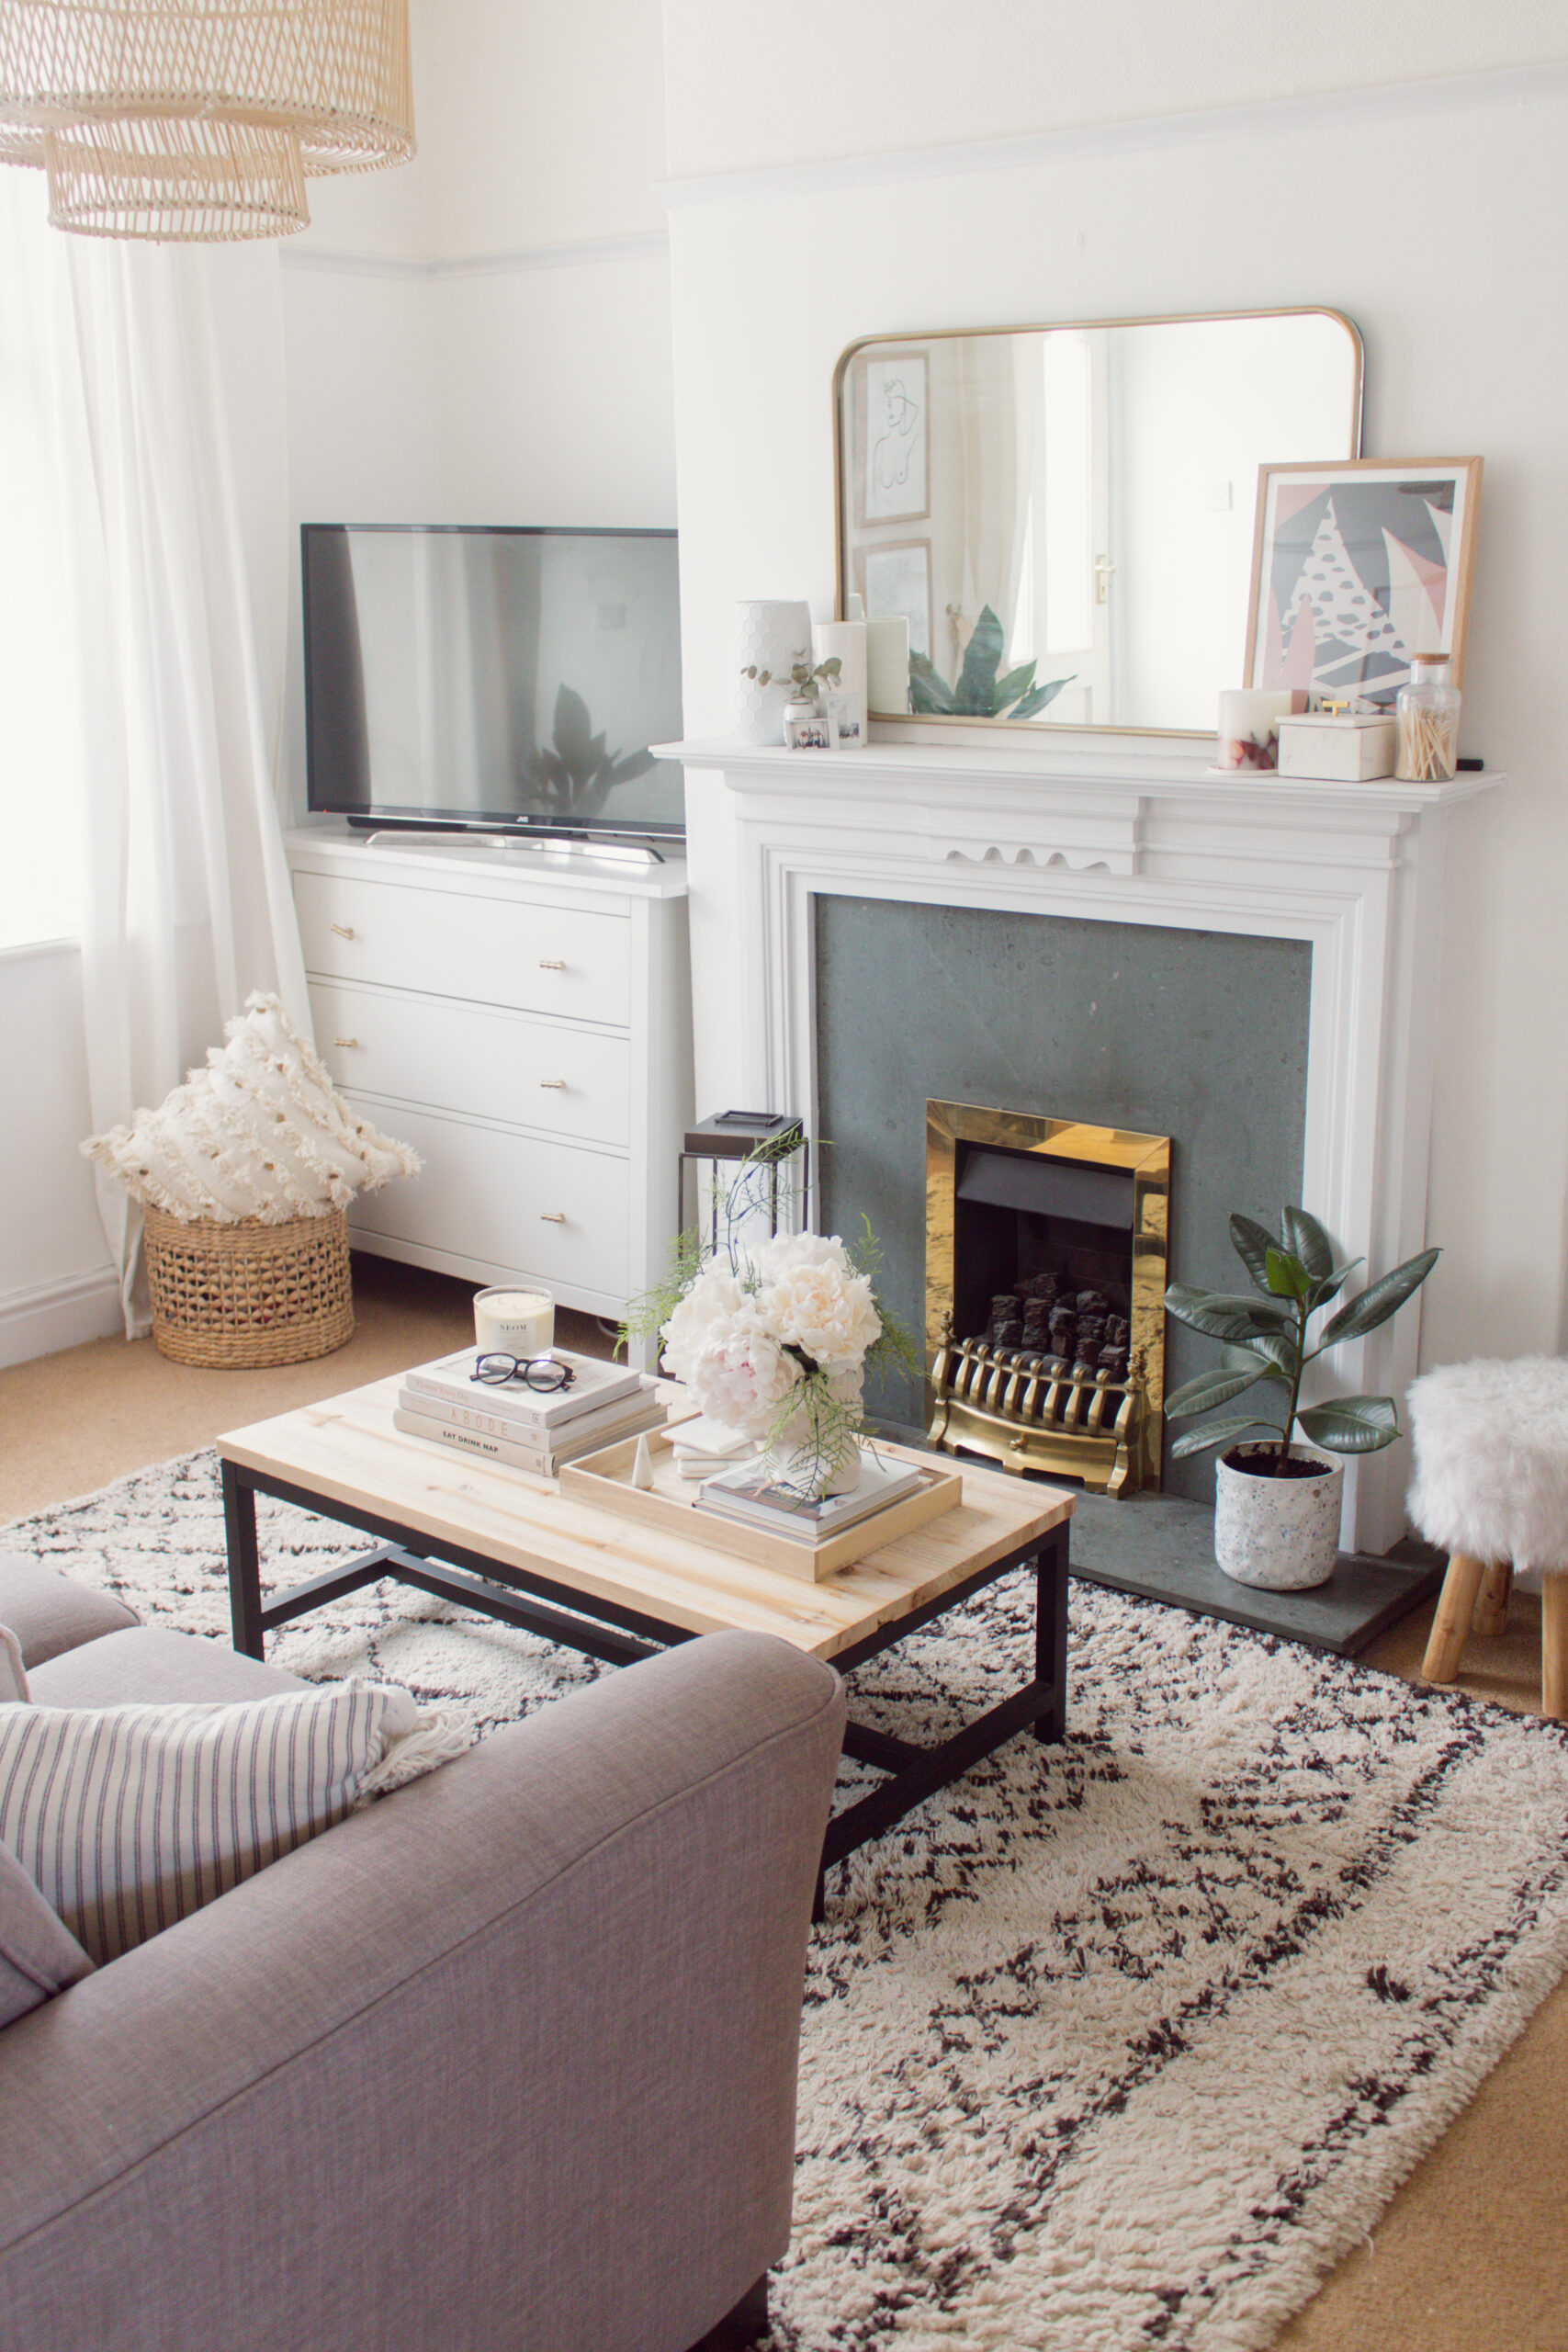 an edited lifestyle making over a rental